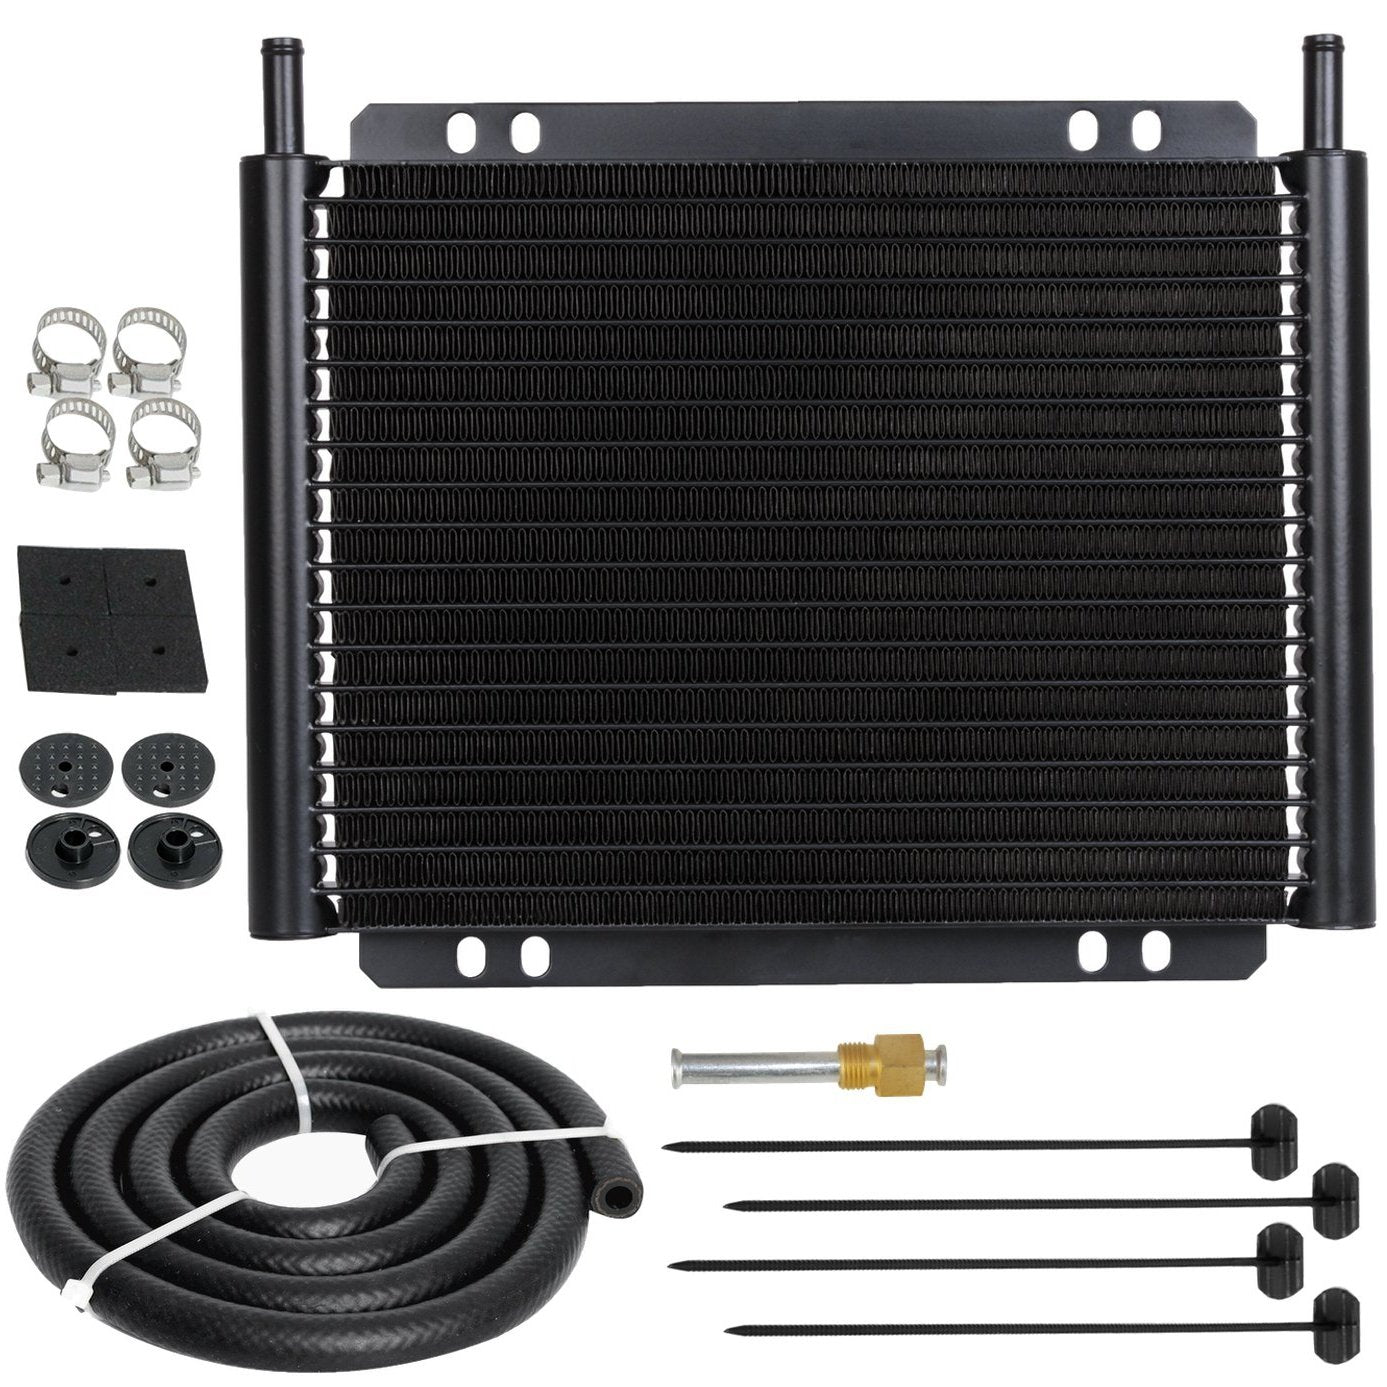 23 Row Aluminum Heavy Duty Auto Engine Transmission Oil Cooler Kit Car Truck RV SUV Trailer Towing-Oil Cooler-American Volt-American Volt